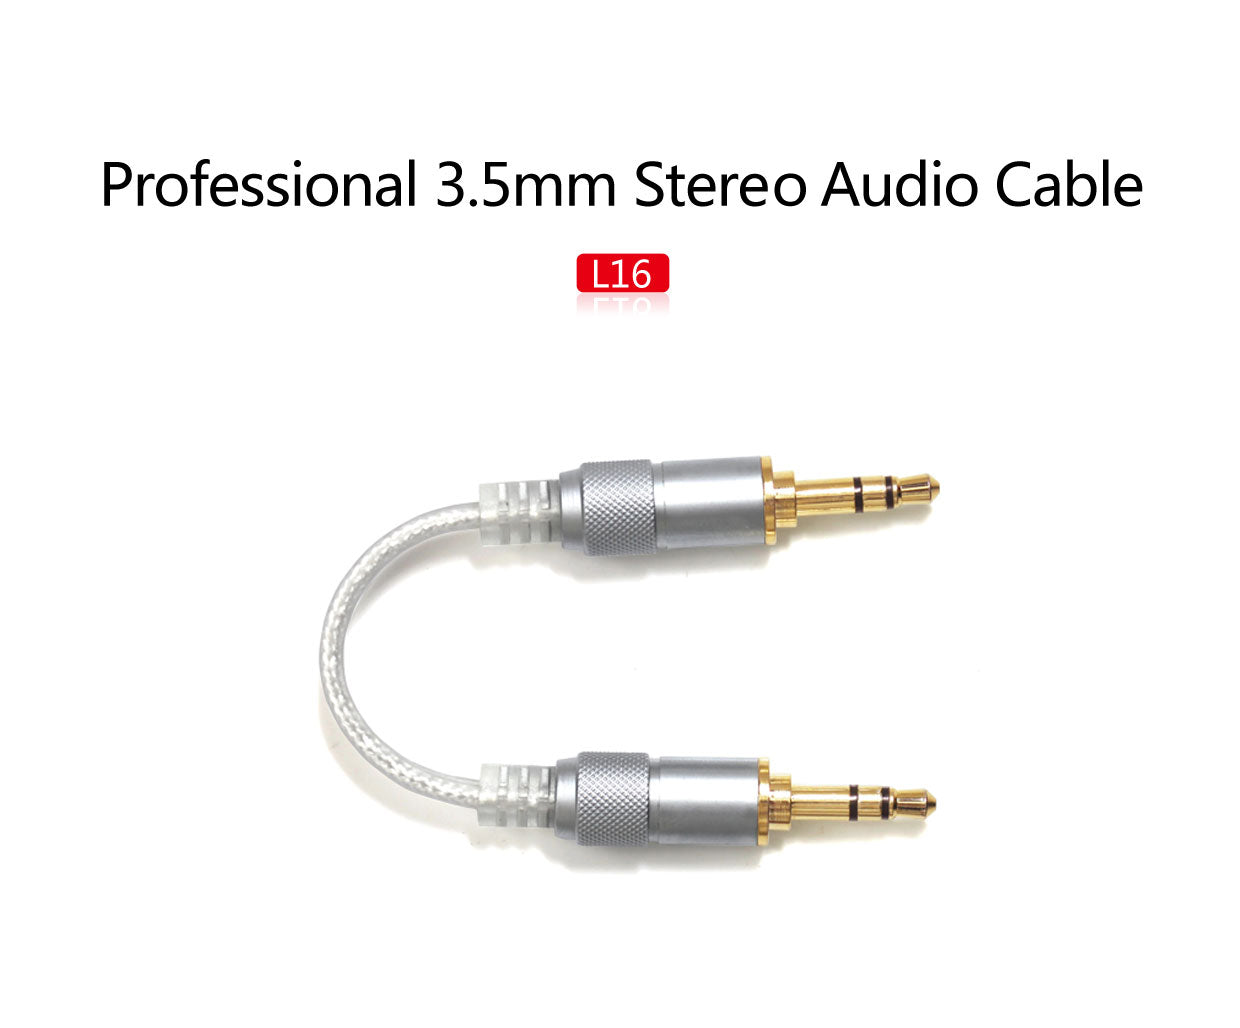 FiiO L16 stereo audio cable - Gears For Ears